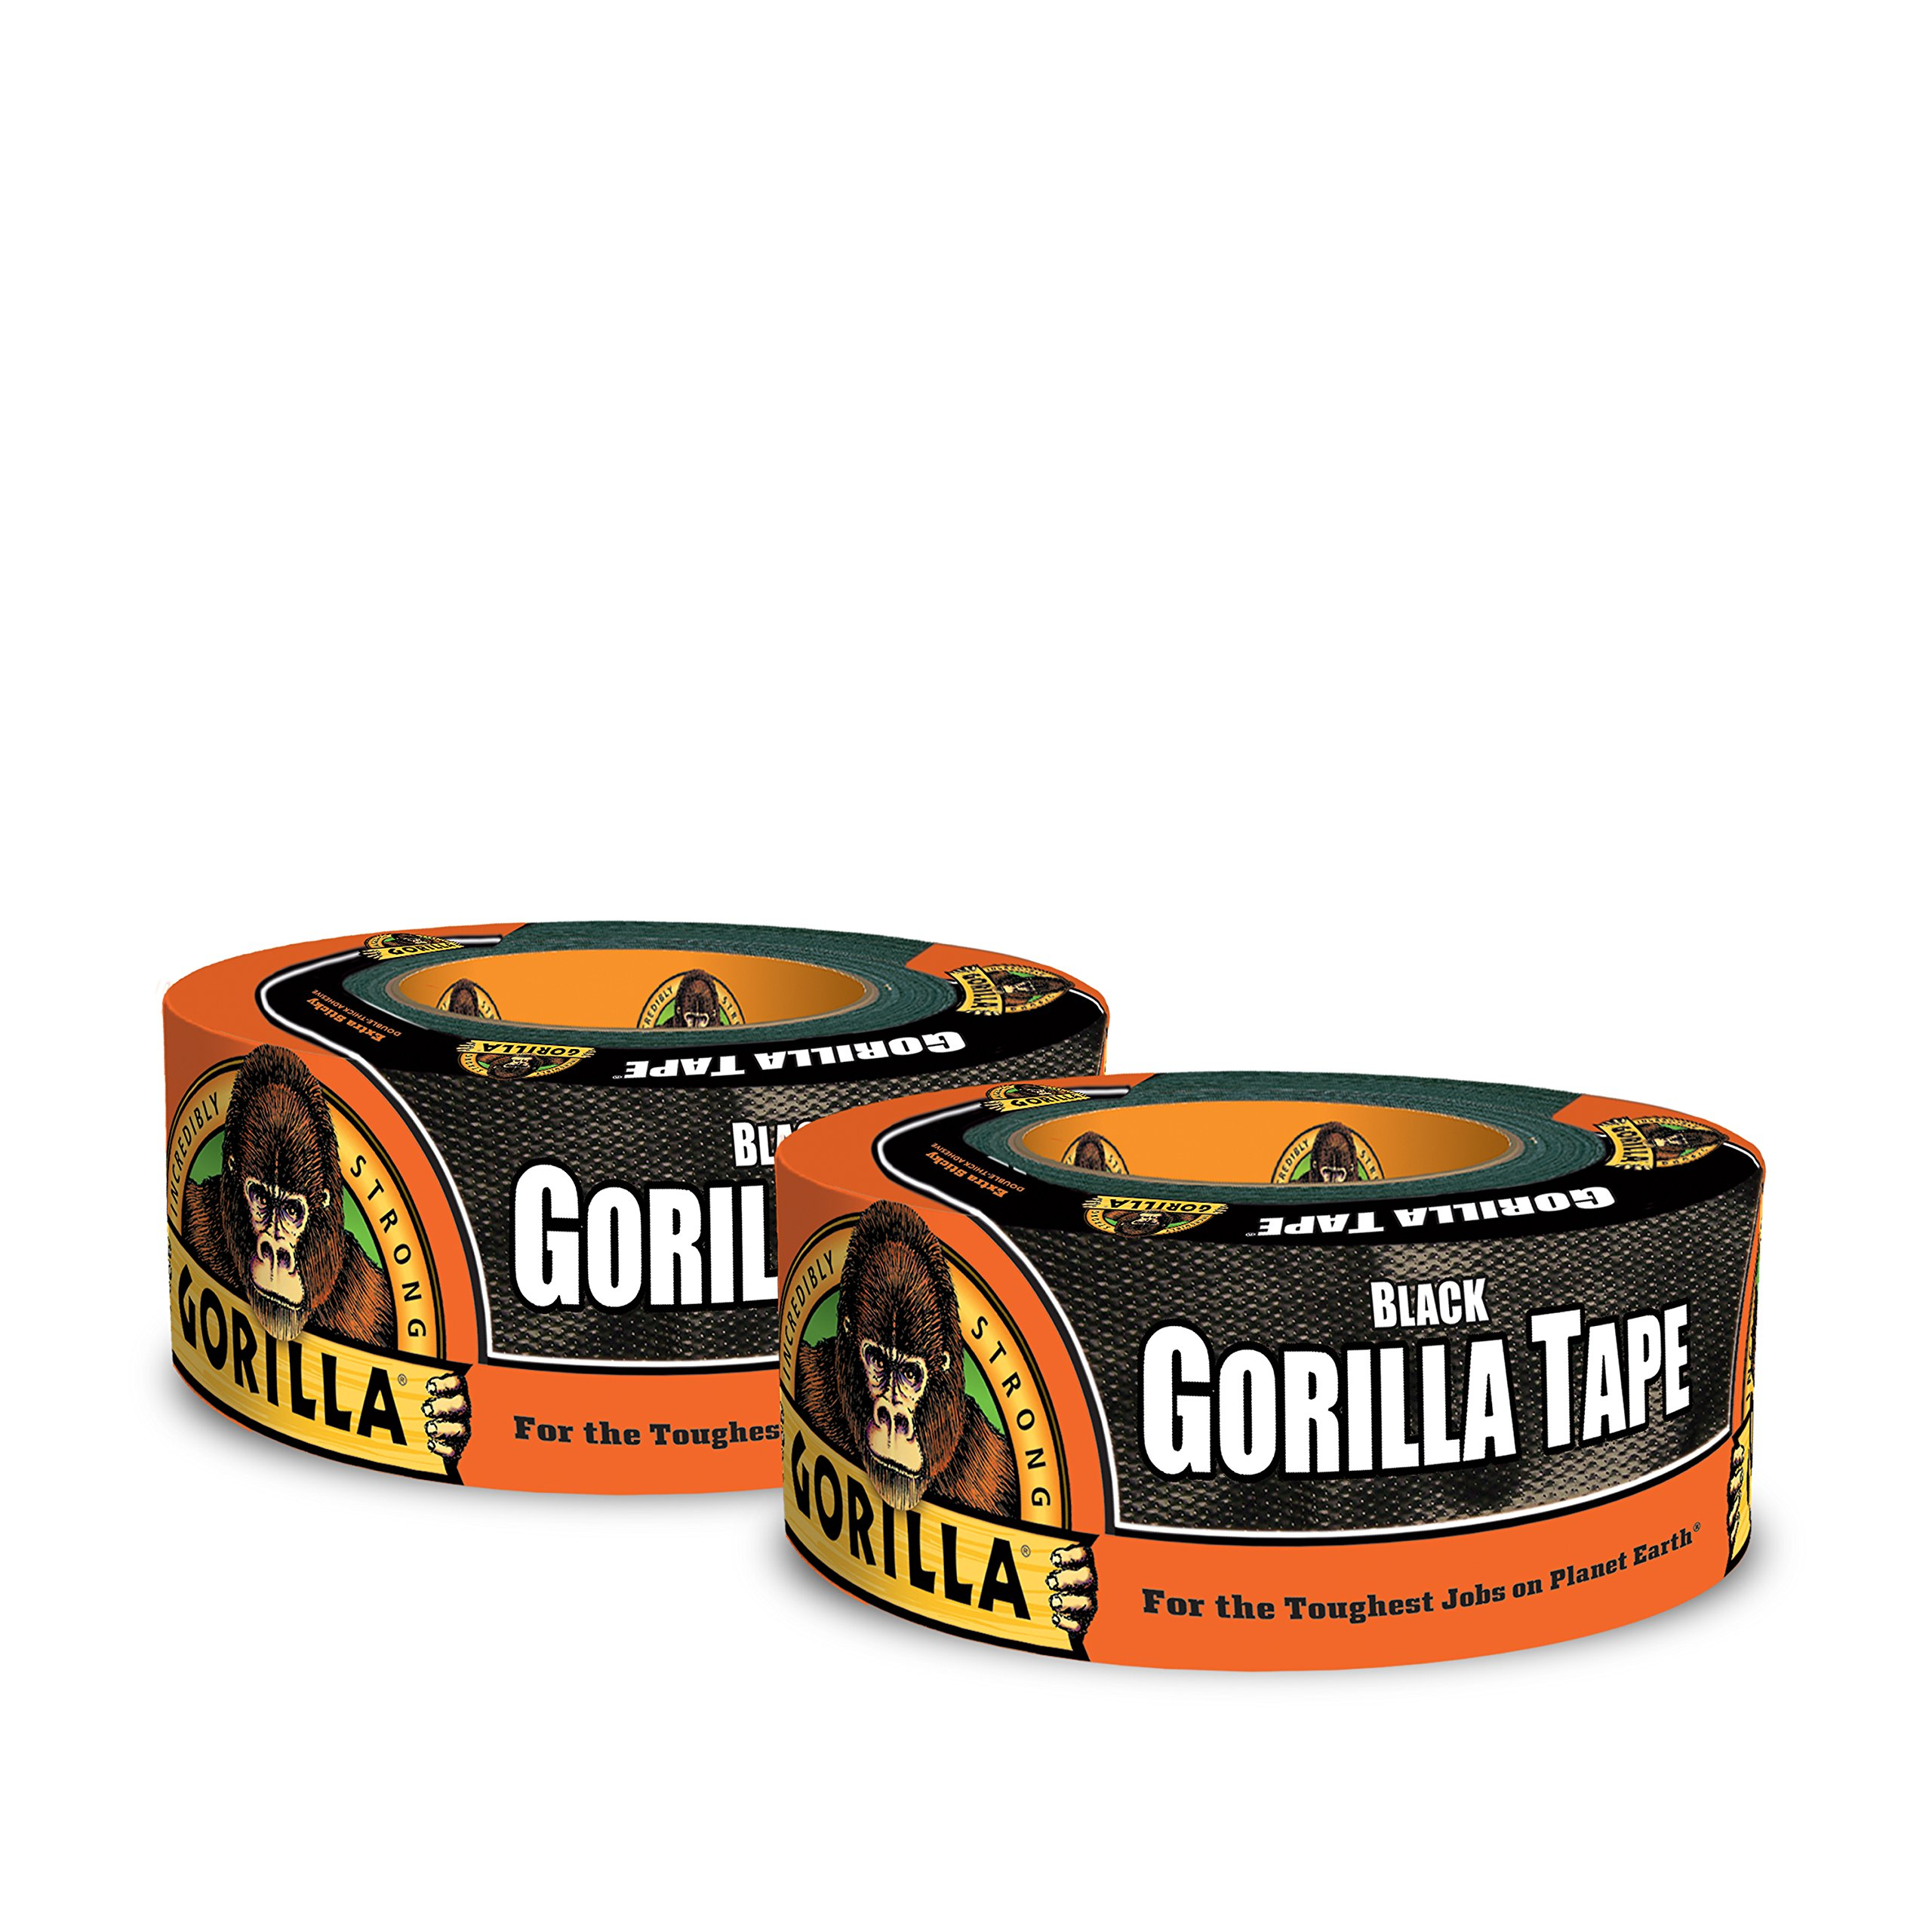 Gorilla Tape, Black Duct Tape, 1.88'' x 12 yd, Black, (Pack of 2)